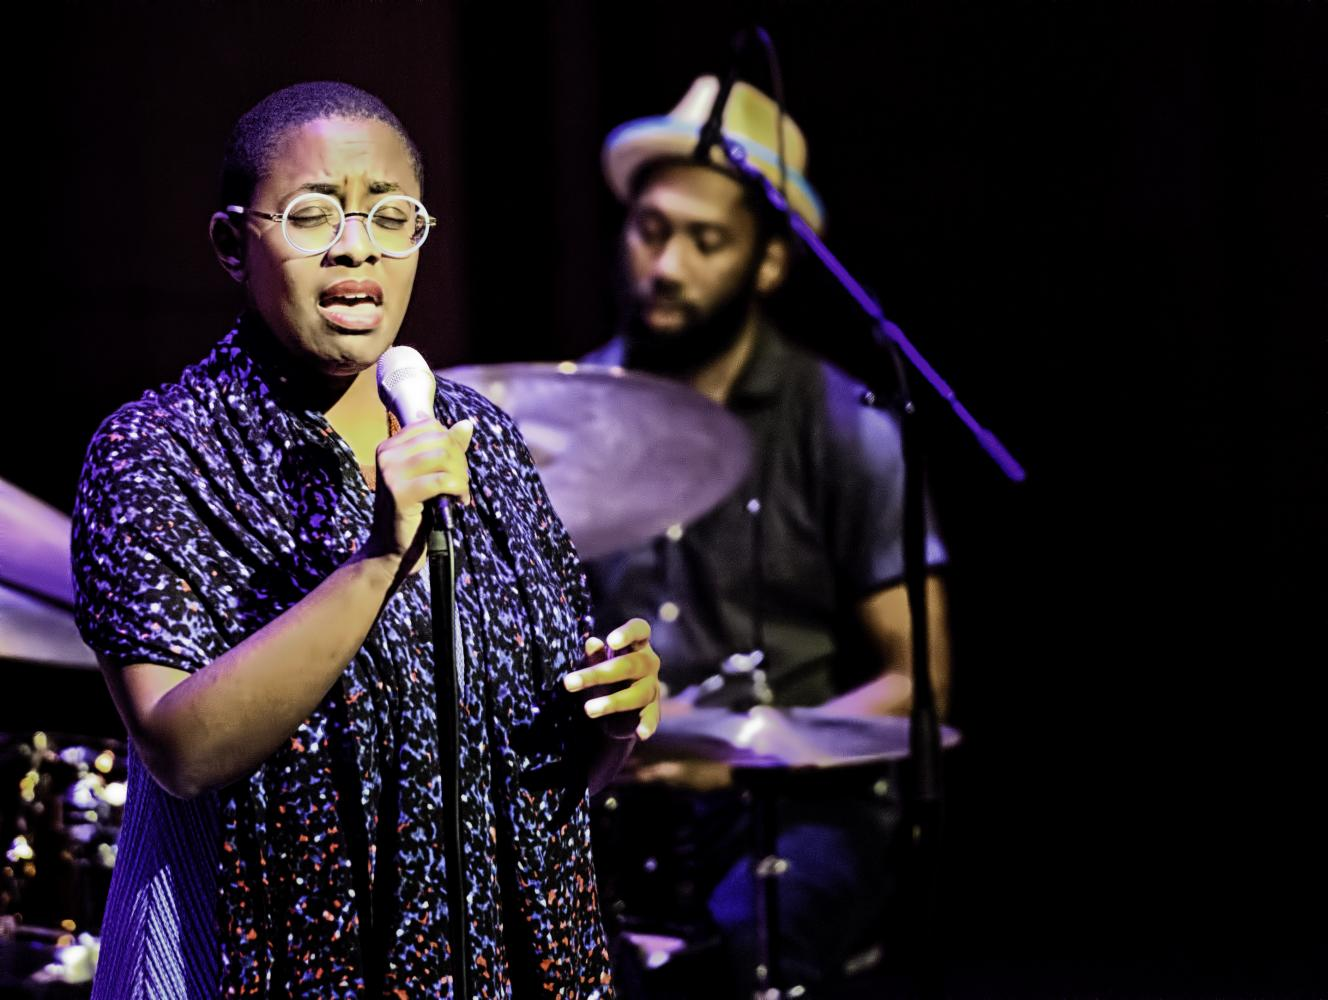 Cecile McLorin Salvant and Lawrence Leathers at the Musical Instrument Museum (MIM) in Phoenix